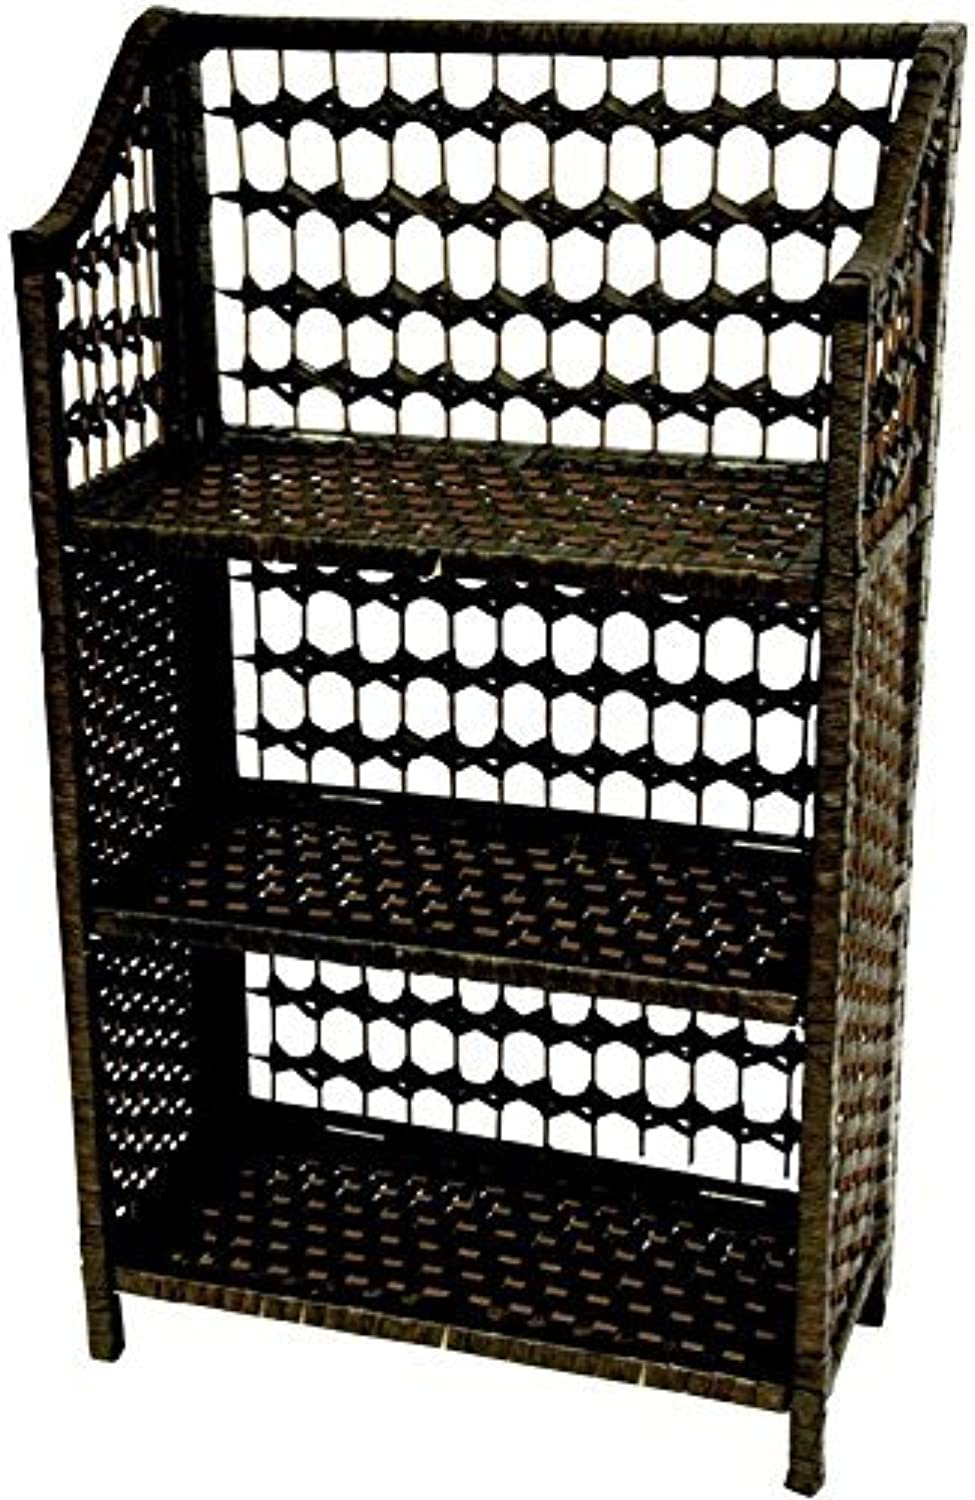 Oriental Furniture Simple Affordable Unique Small Size Book Case, 33-Inch Collapsible Natural Fiber Shelf Unit, Black